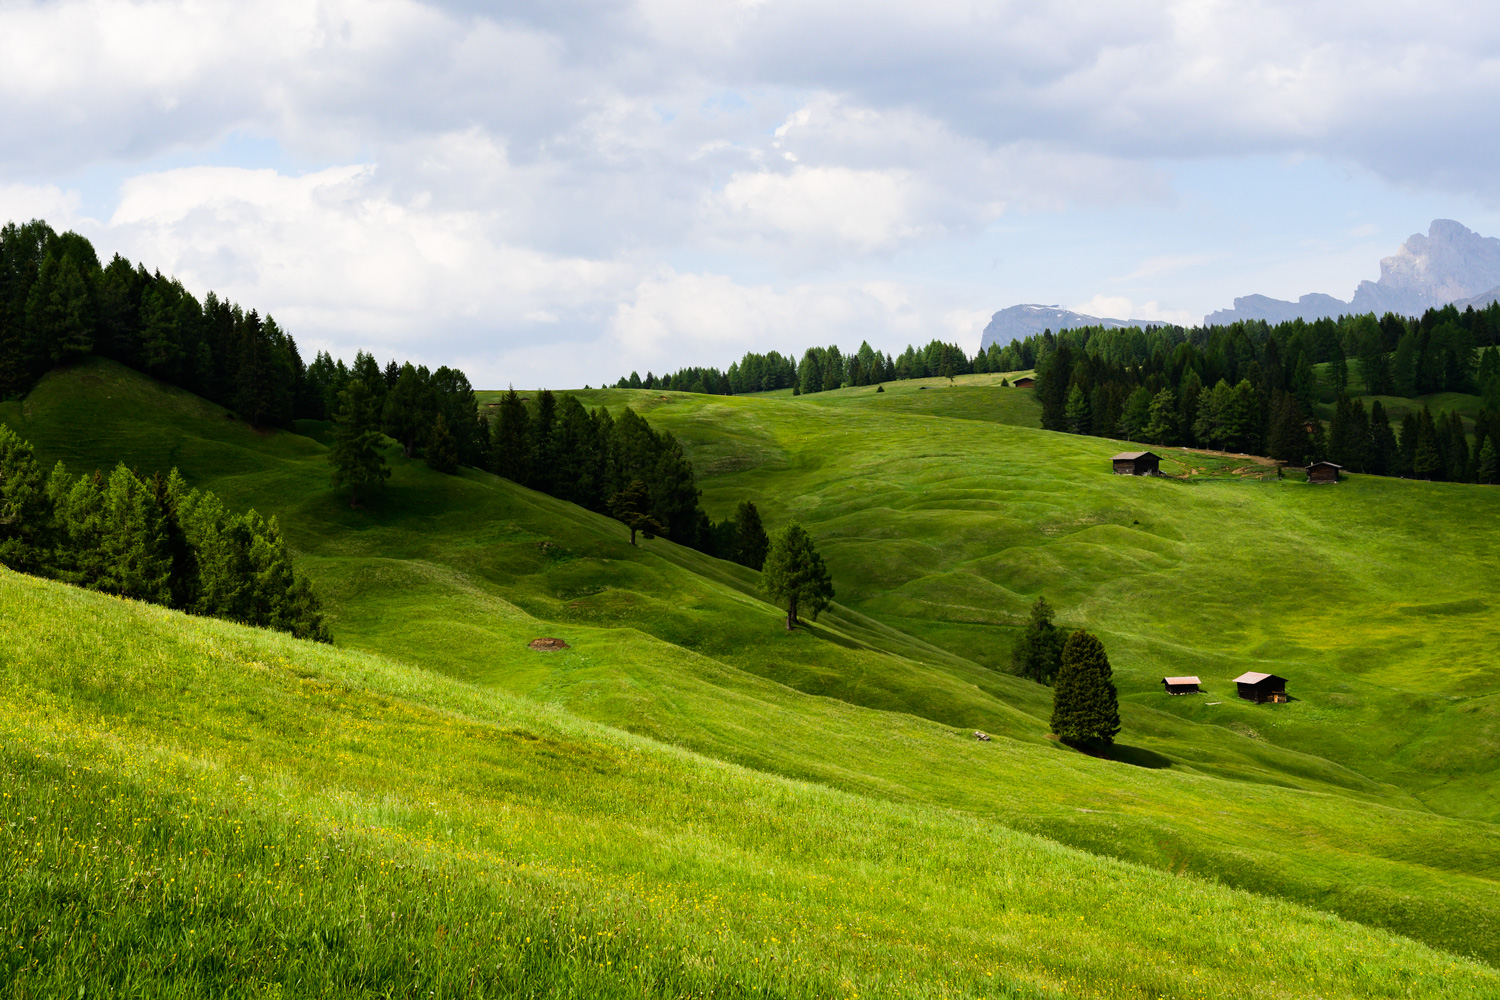 In the Meadows - Alpe di Siusi